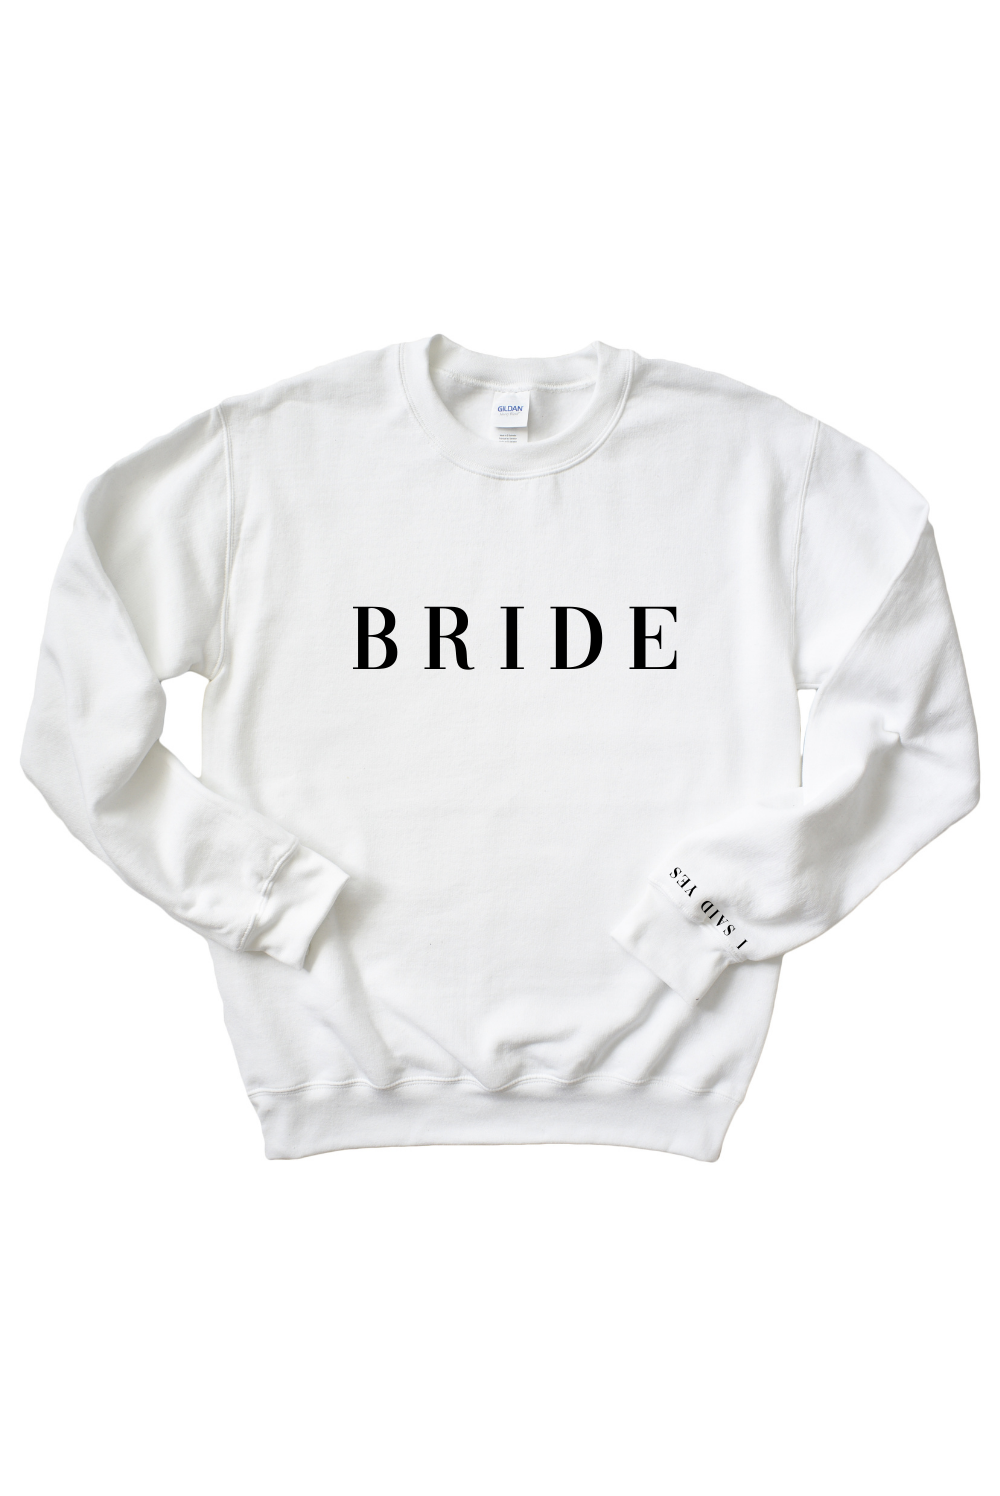 I Said Yes - Bride Sweatshirt